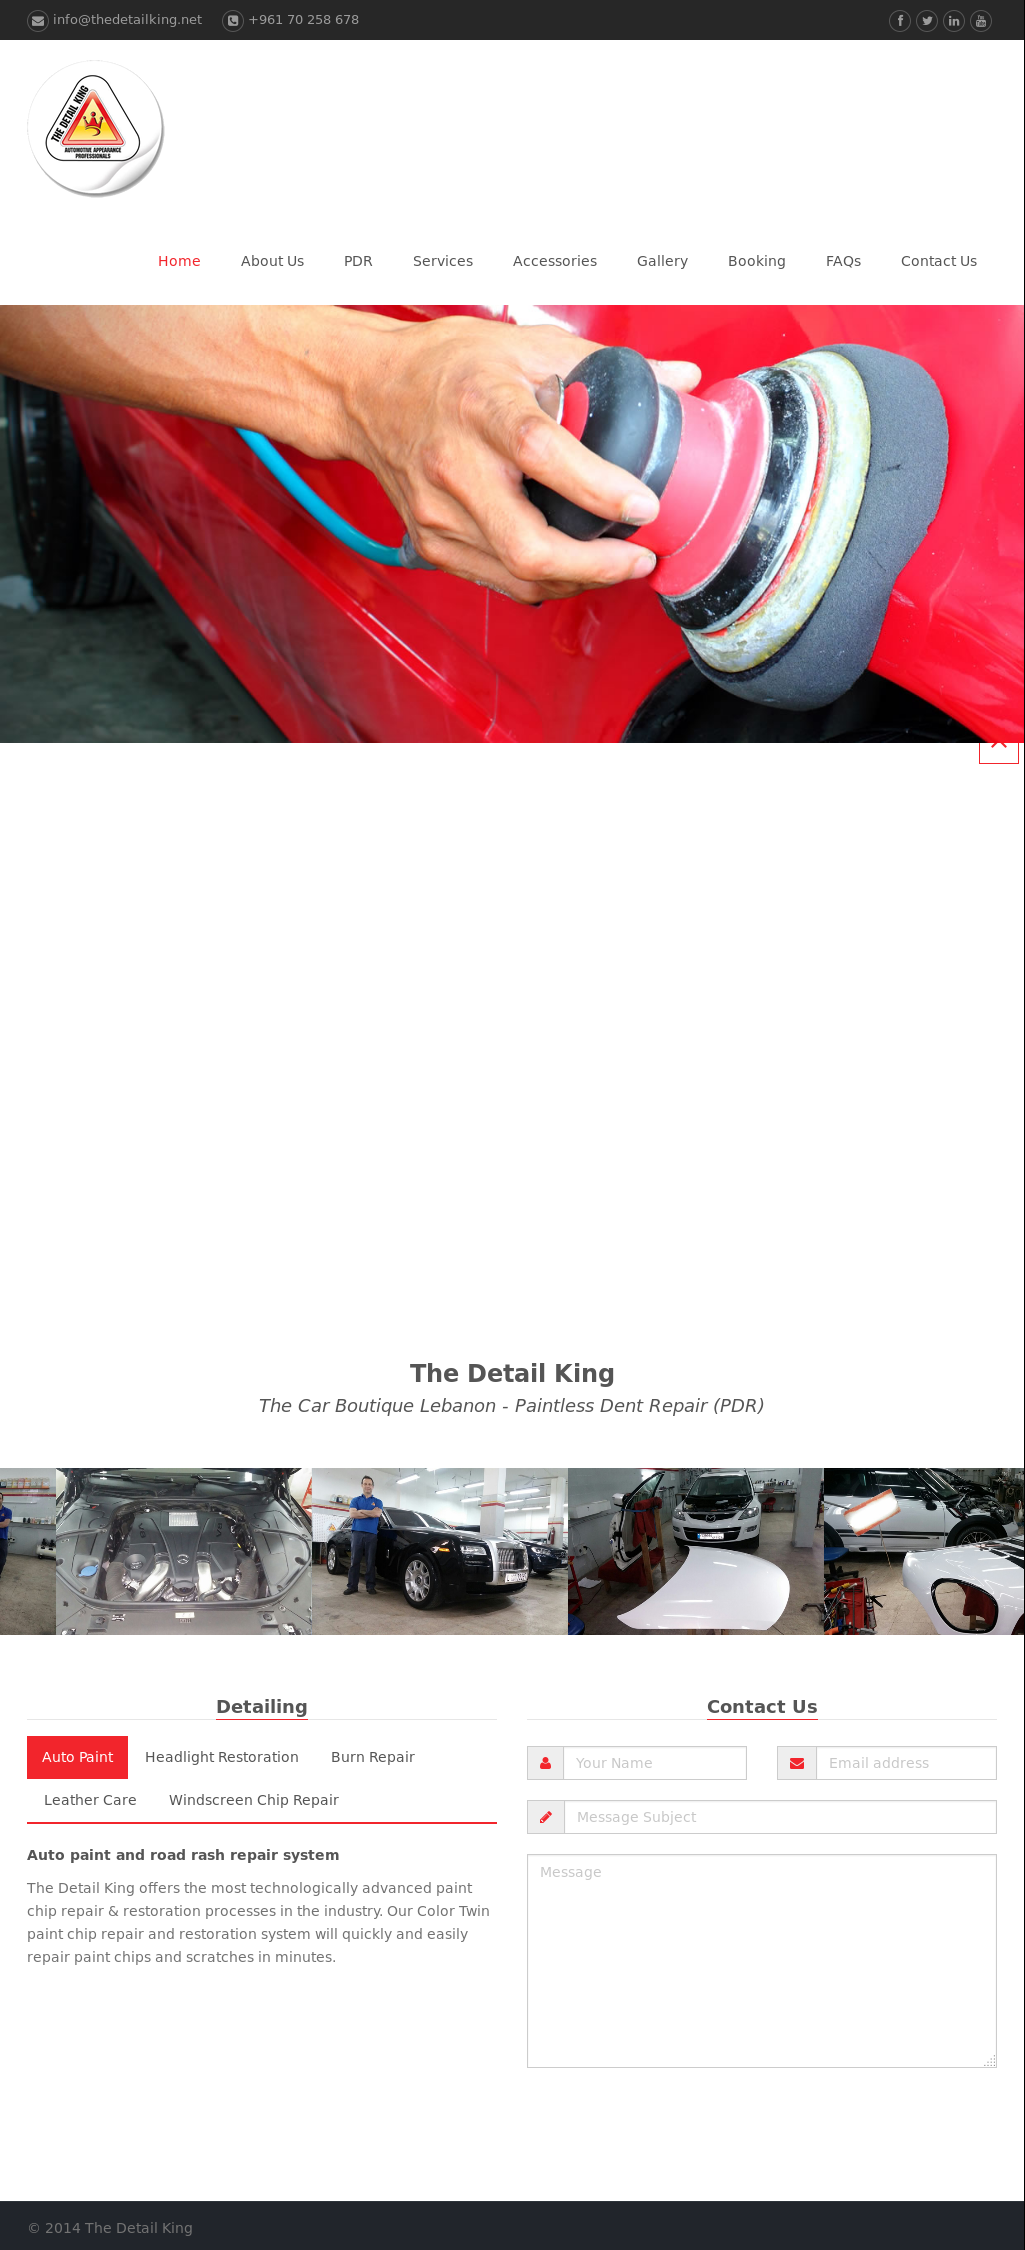 The Detail King Competitors, Revenue and Employees - Owler Company